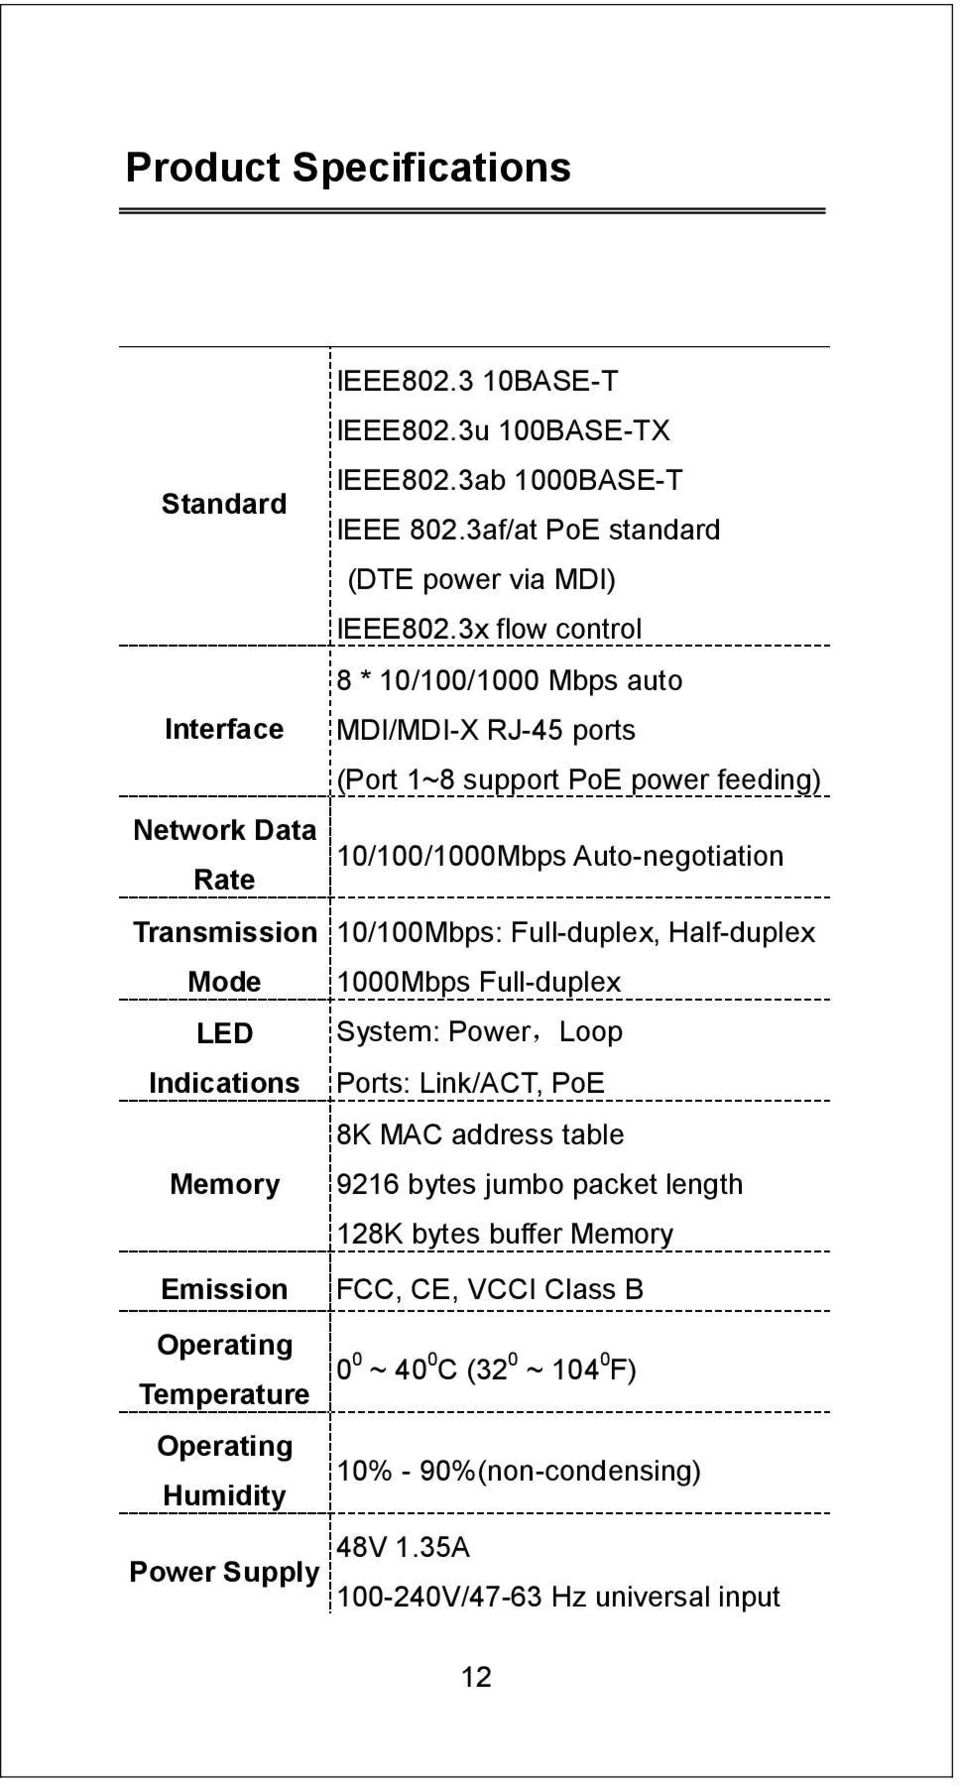 10/100Mbps: Full-duplex, Half-duplex Mode 1000Mbps Full-duplex LED System: Power,Loop Indications Ports: Link/ACT, PoE 8K MAC address table Memory 9216 bytes jumbo packet length